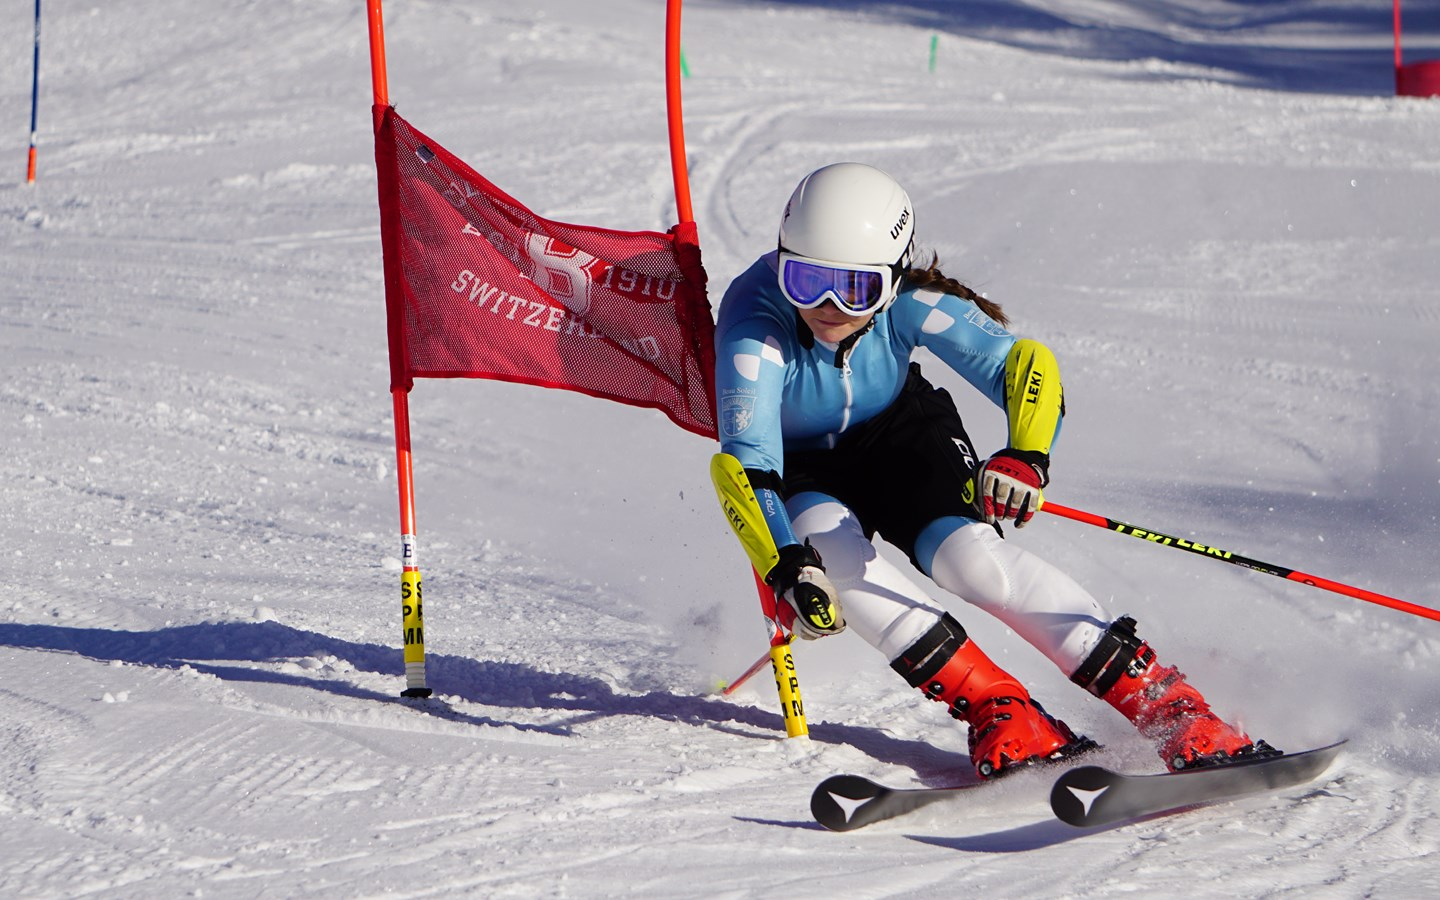 Beau Soleil ski Athlete performance group